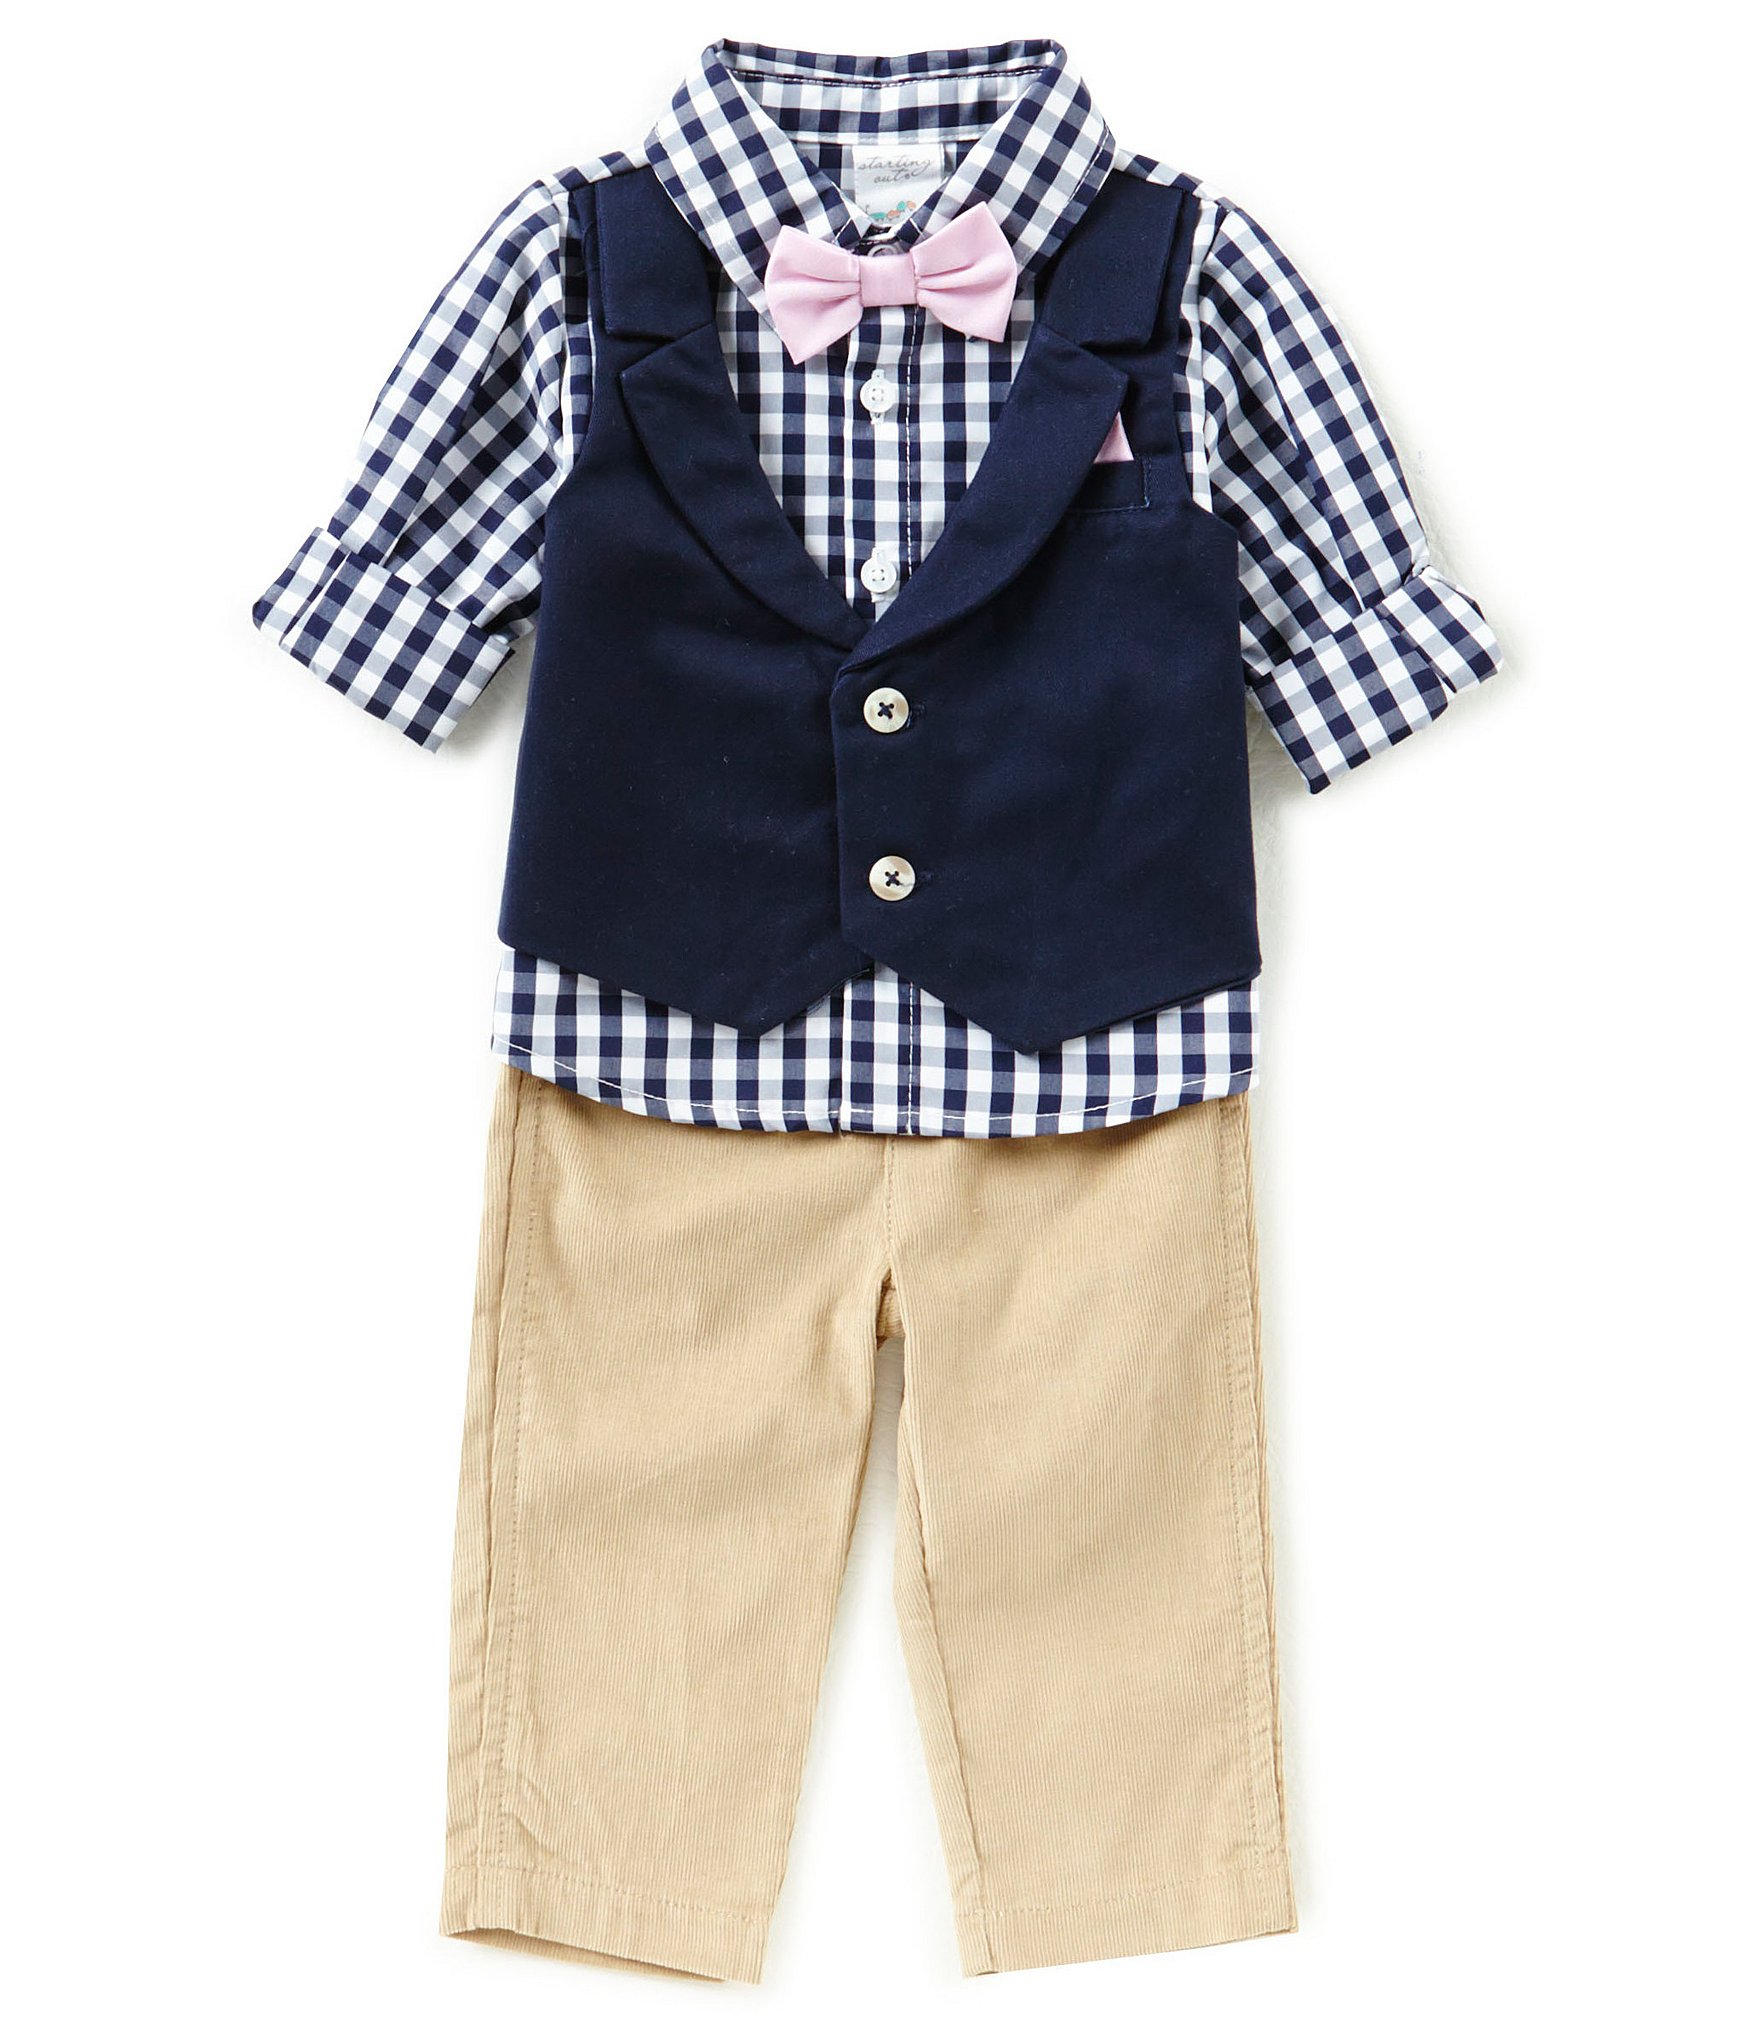 Starting out baby boys 3 24 months gingham print shirt for Baby shirt and bow tie